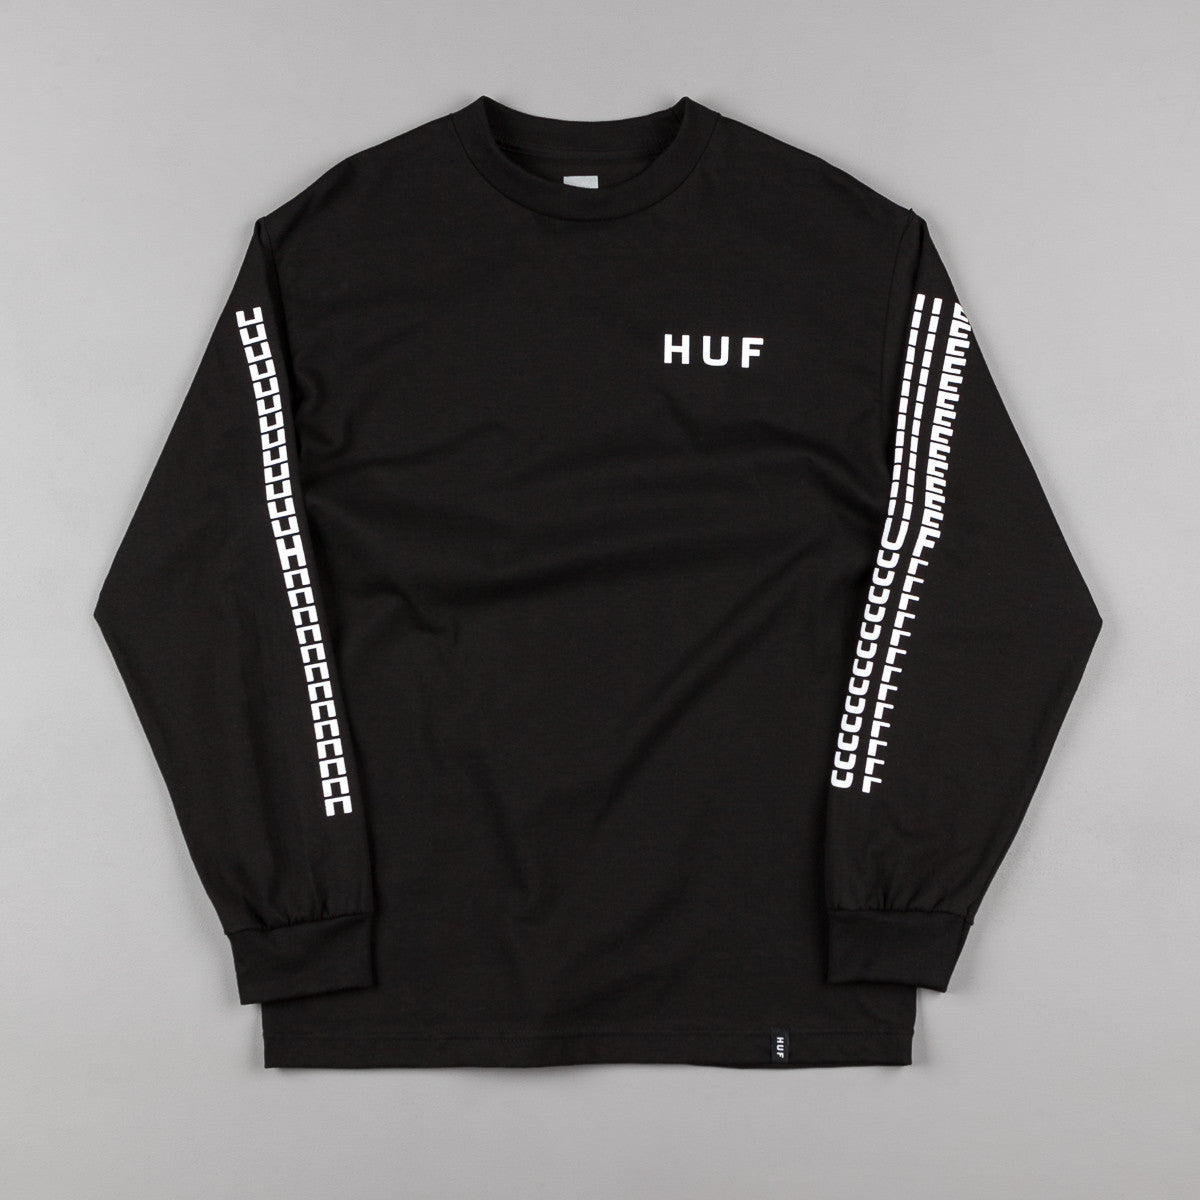 HUF Sante Long Sleeve T-Shirt - Black